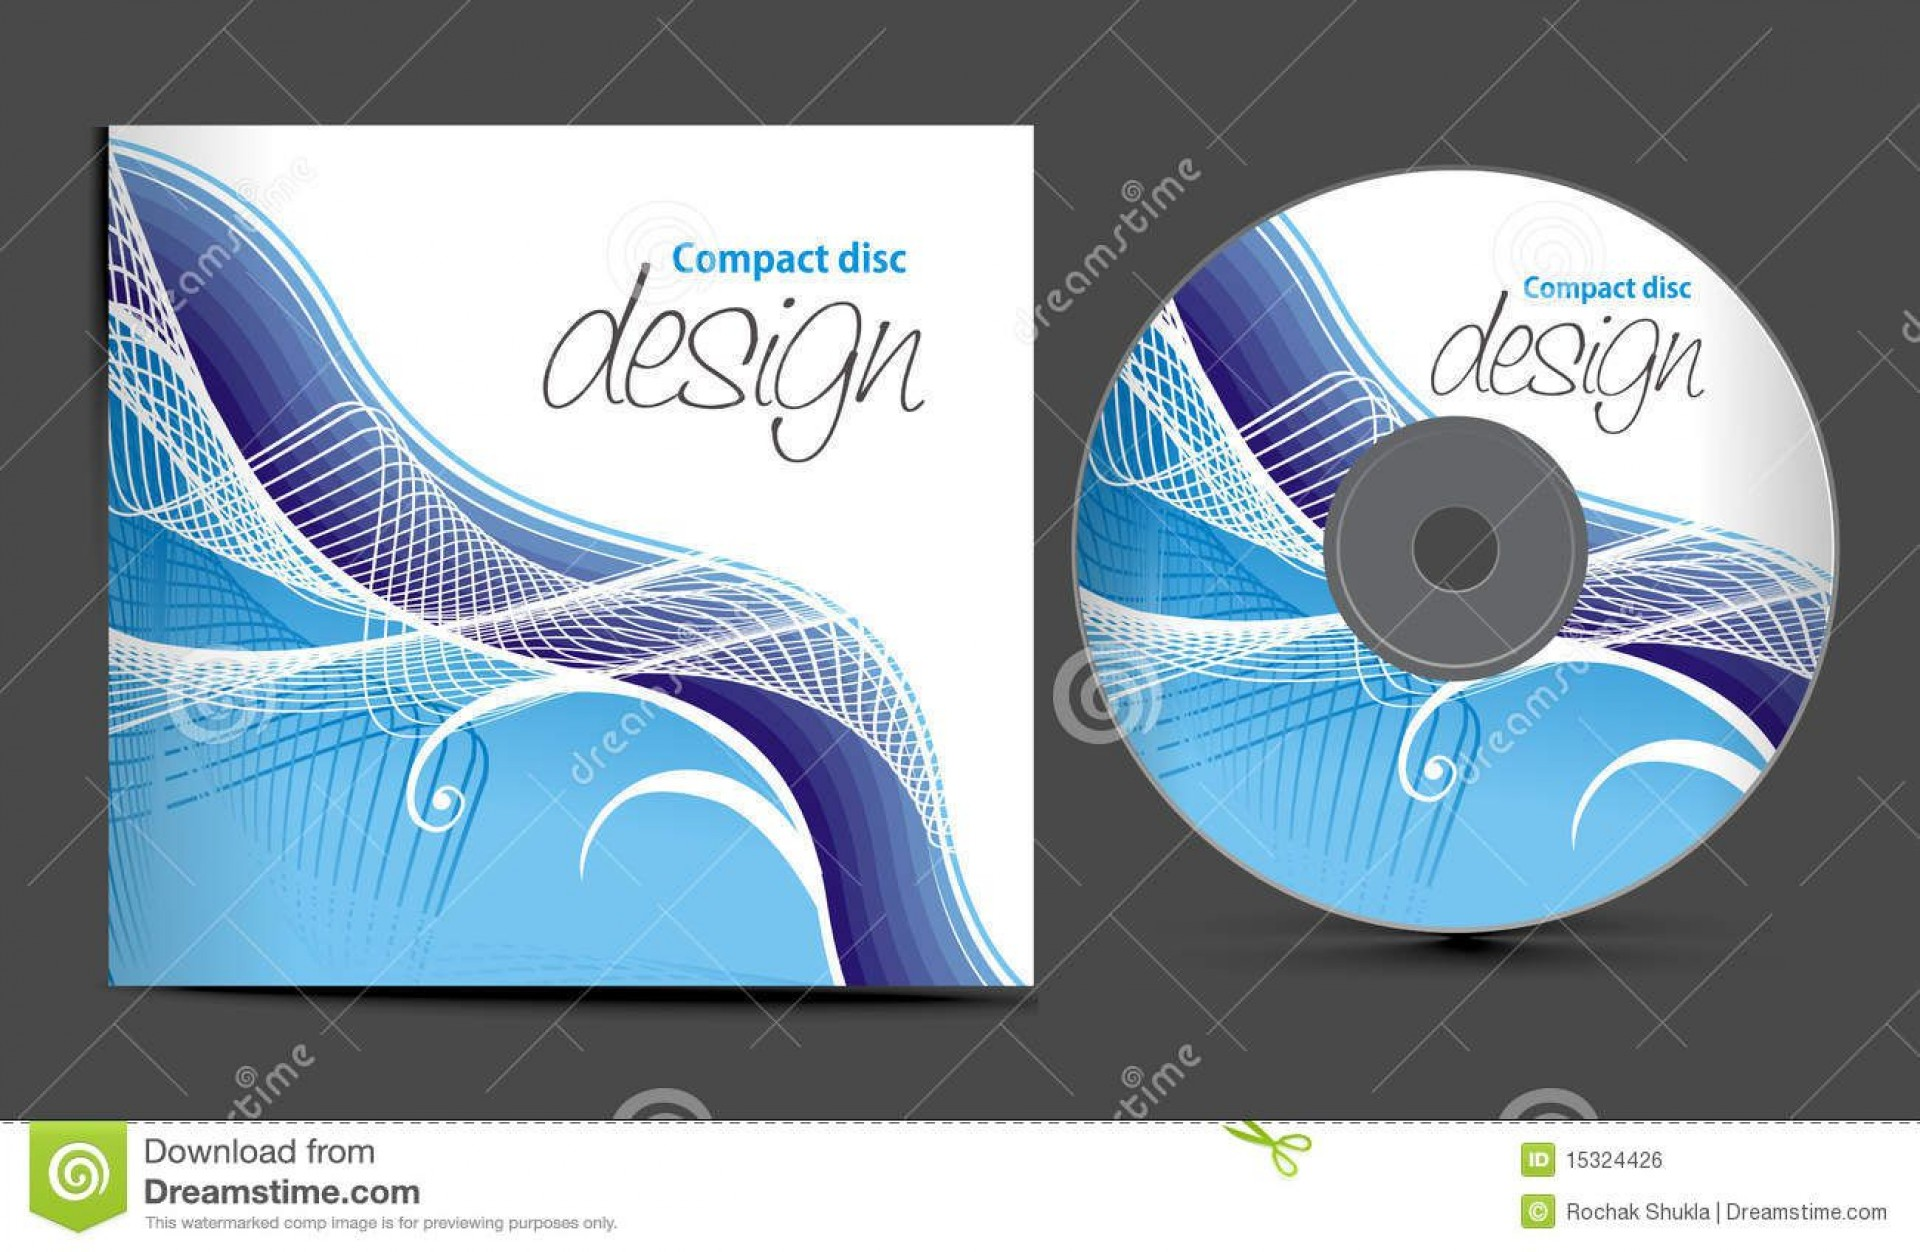 004 Wondrou Cd Label Design Template Free Download Picture  Cover Psd1920